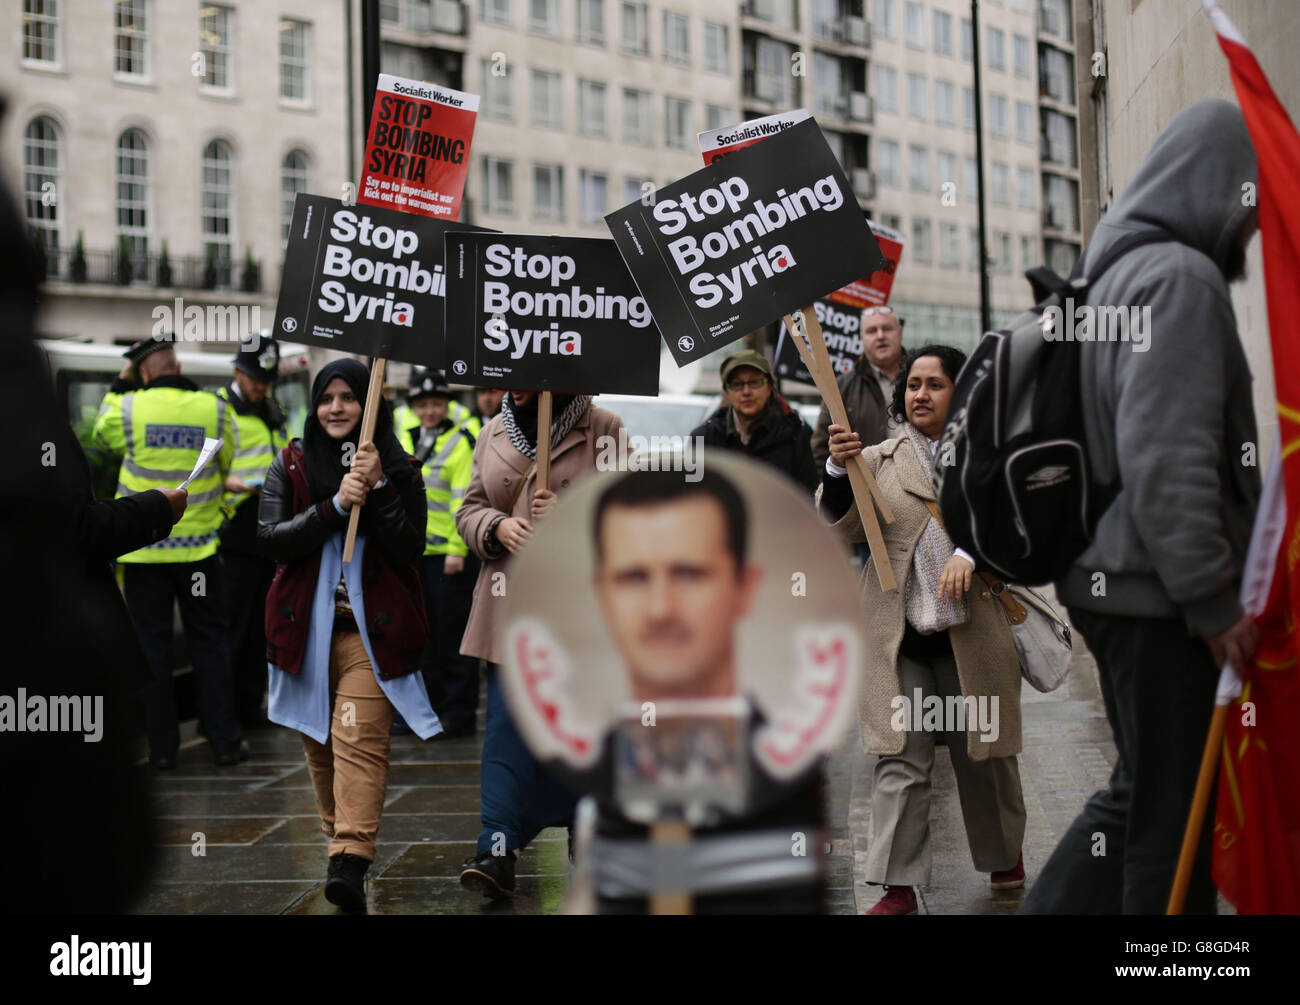 Syria conflict - Stock Image